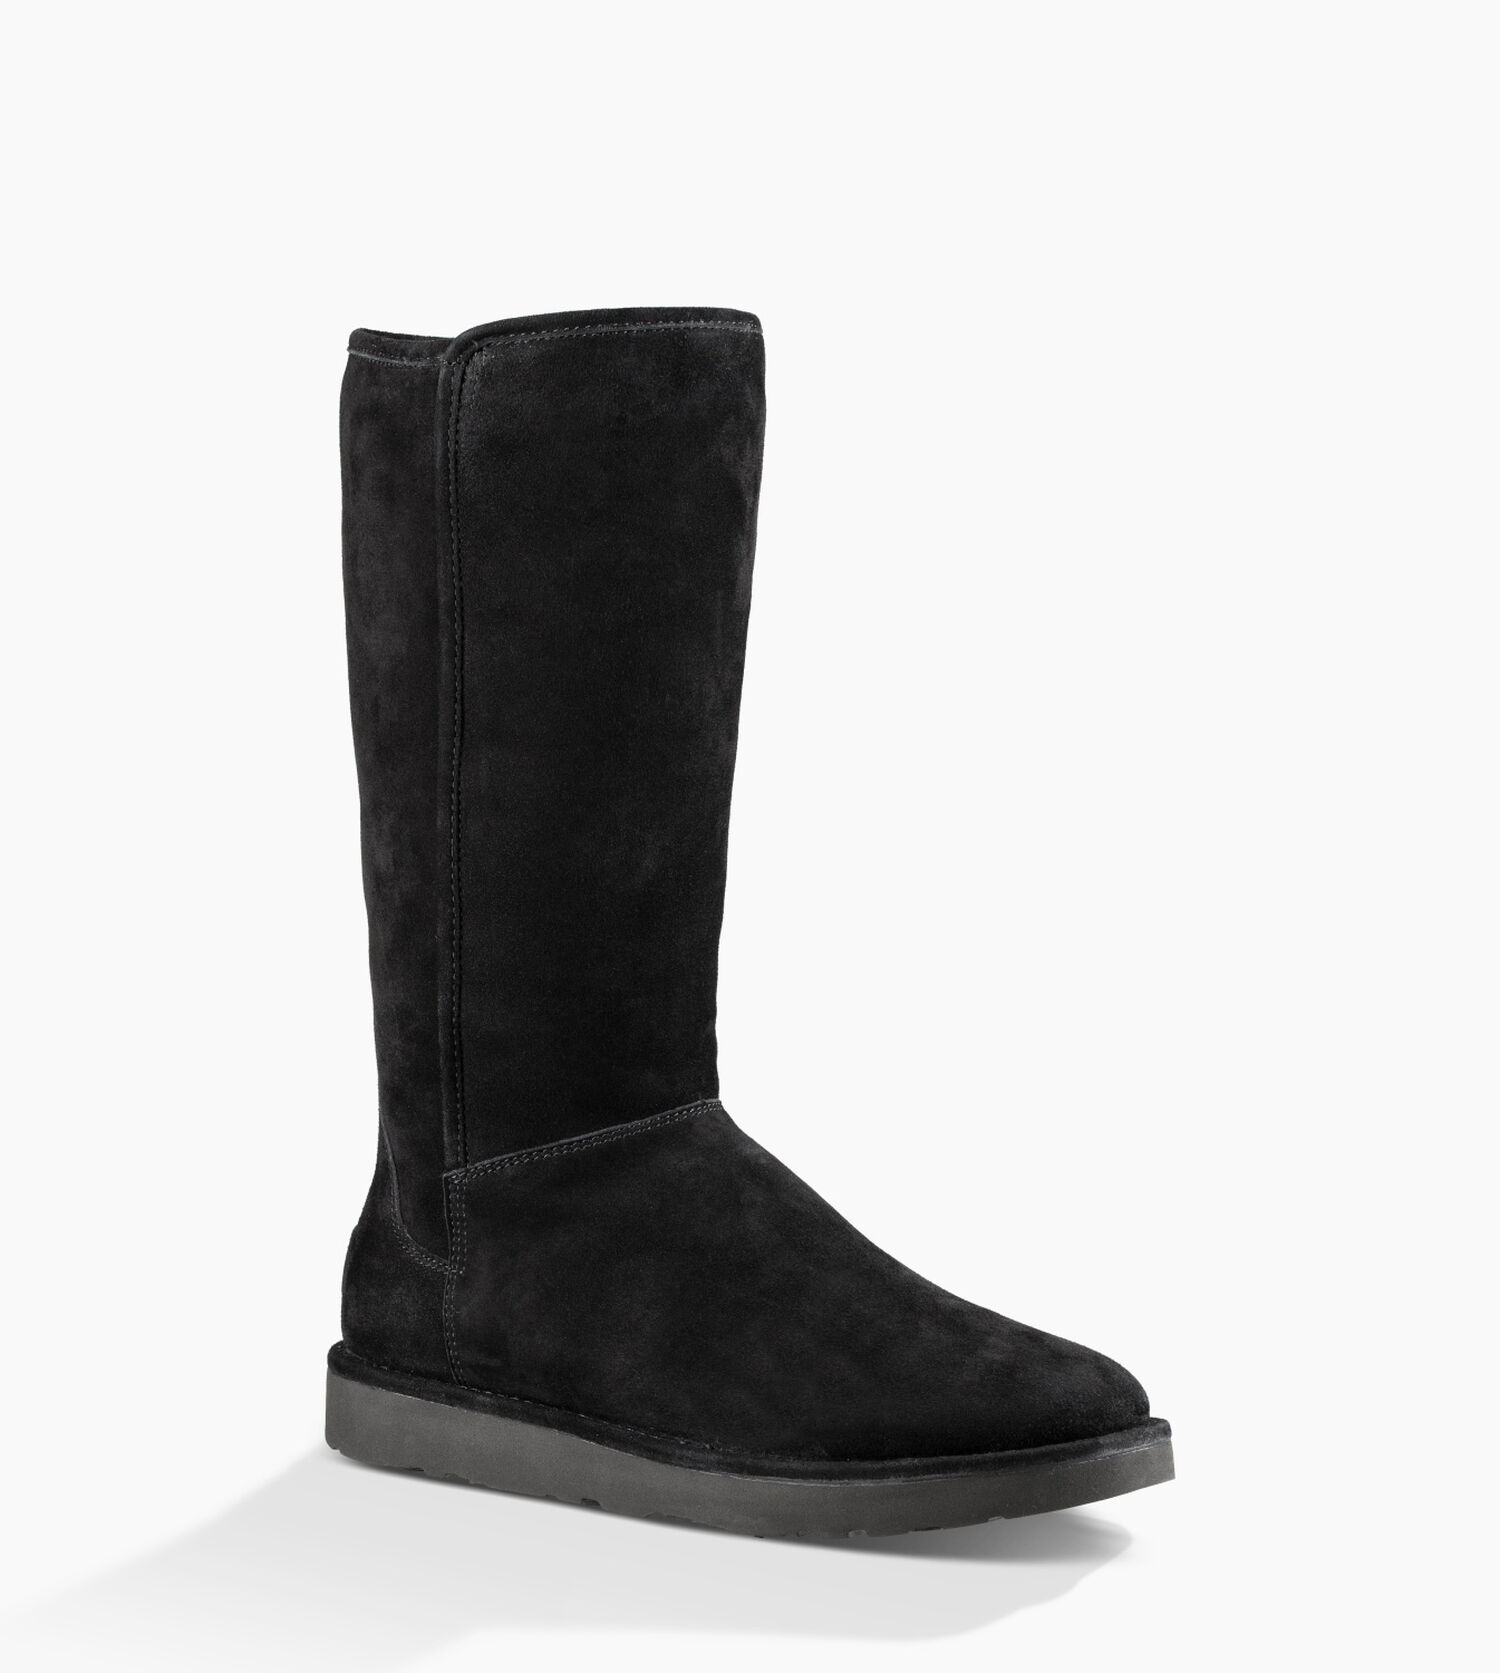 107ecb56fe3 Women's Share this product Abree II Boot